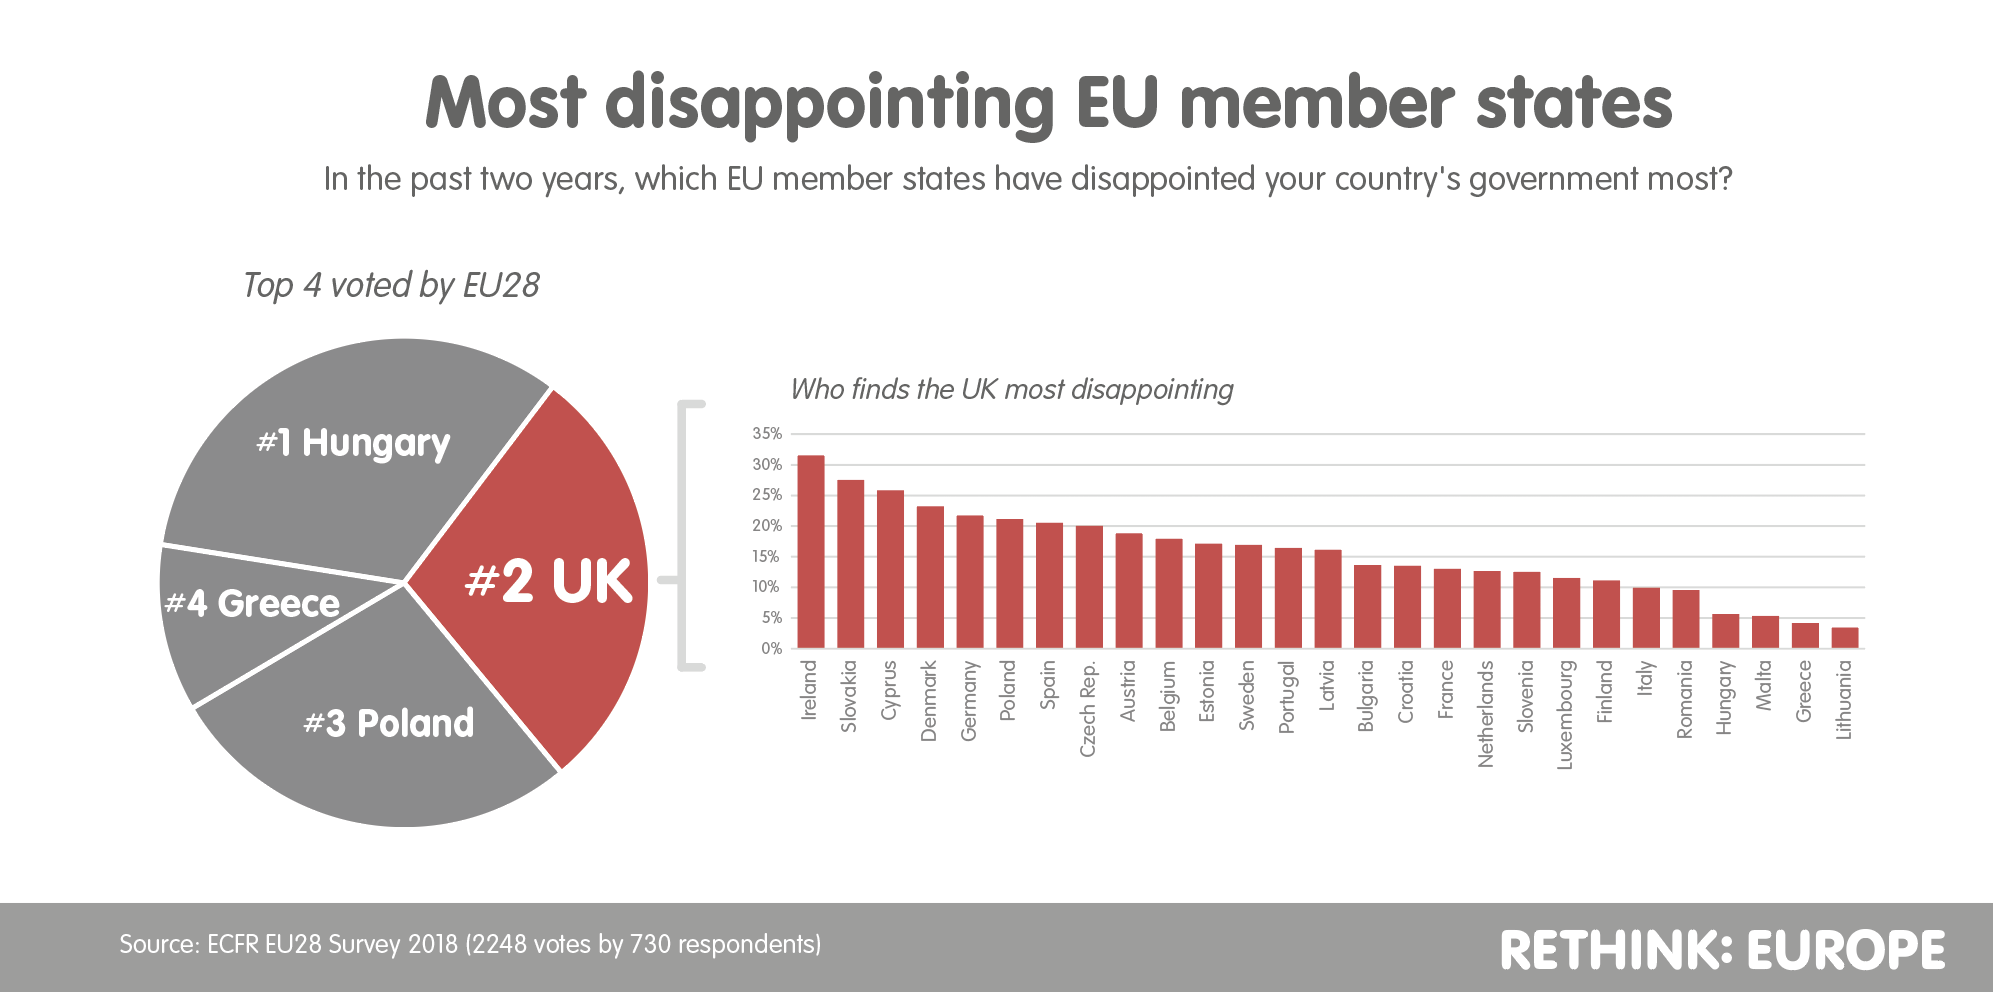 Most disappointing EU member states